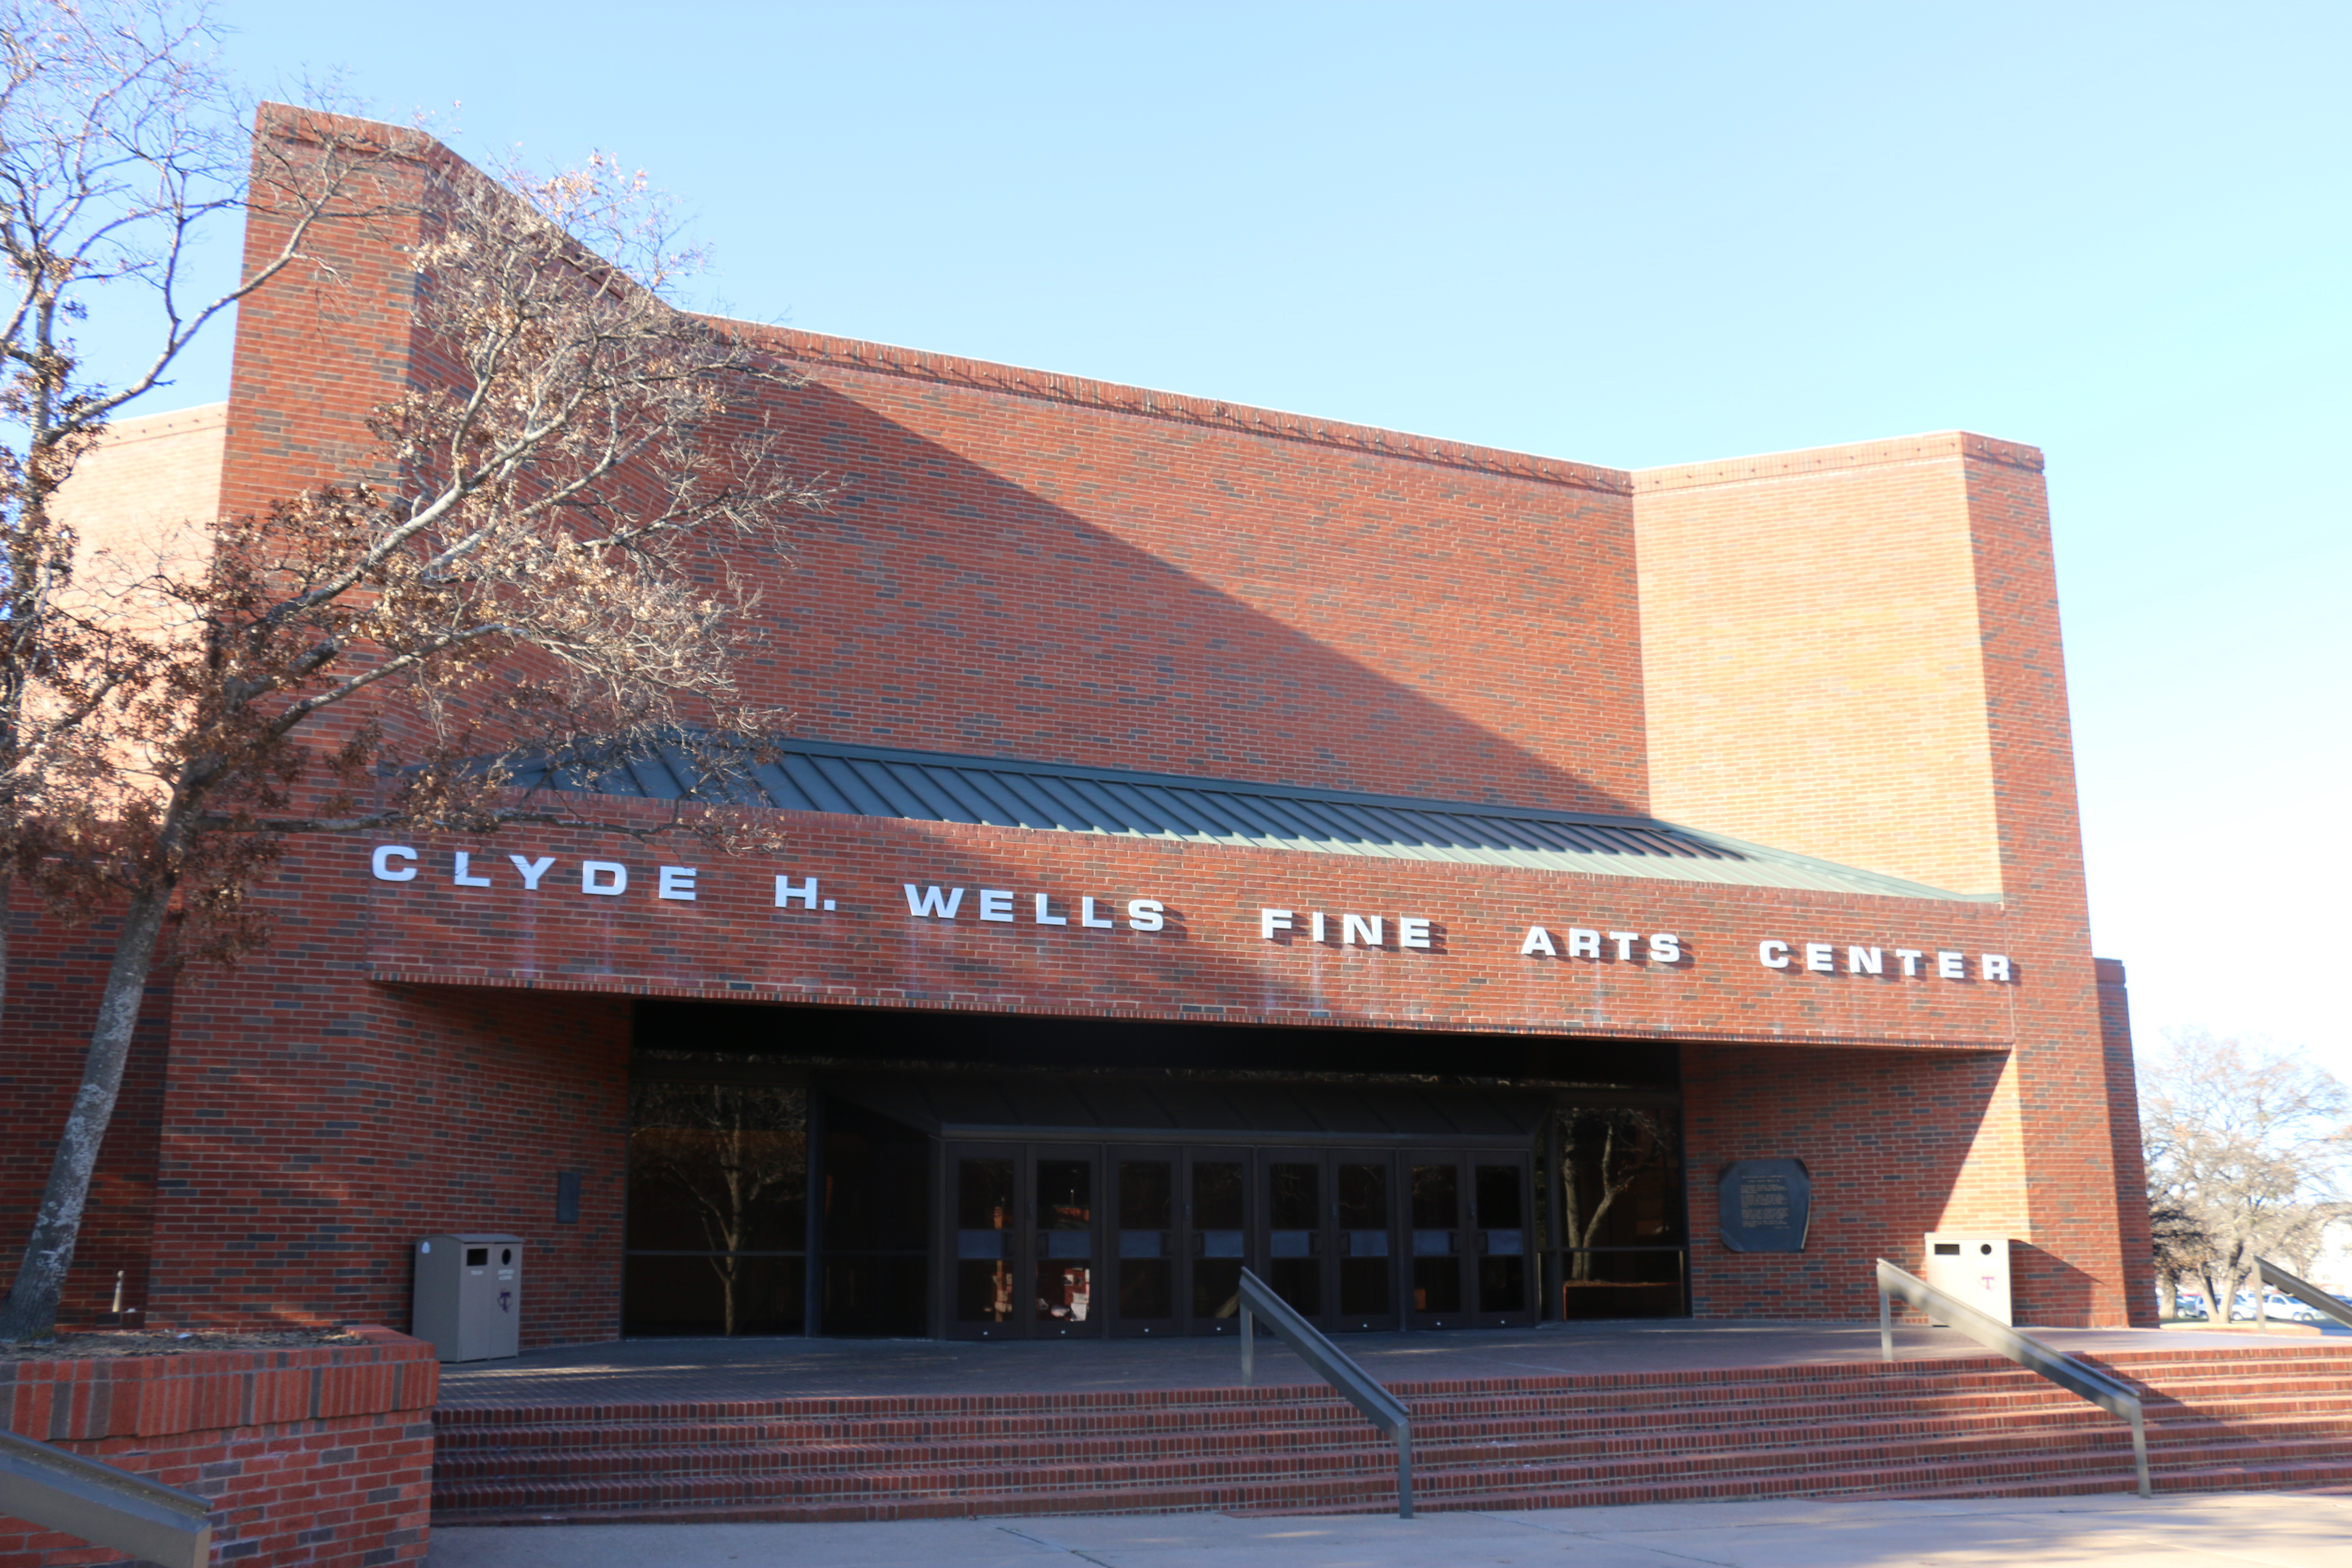 The Clyde H. Wells Fine Arts Center is the building on campus where most fine arts classes take place. Photo by Forrest Murphy